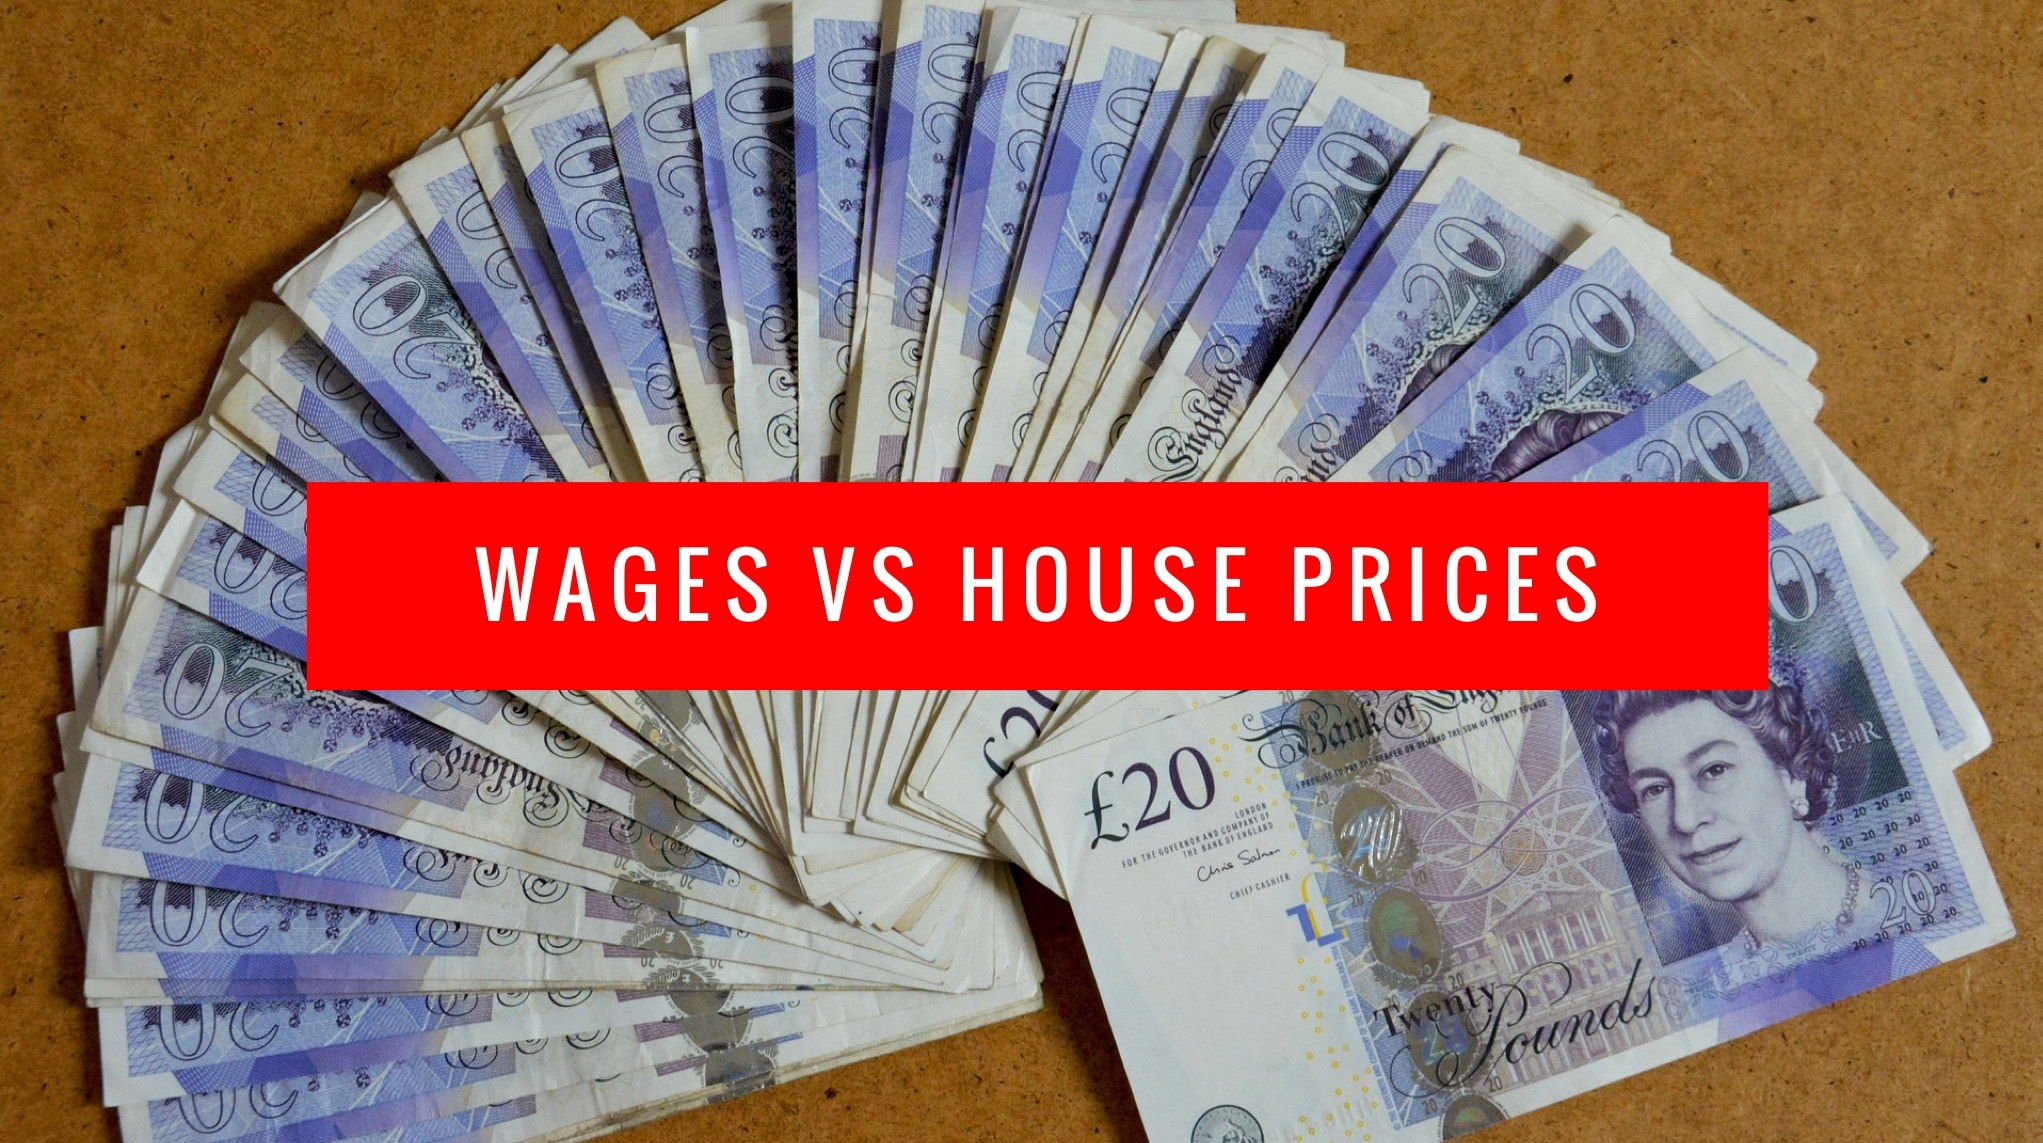 Canterbury House Prices Outstrip Wage Growth by 11.57% since 2007